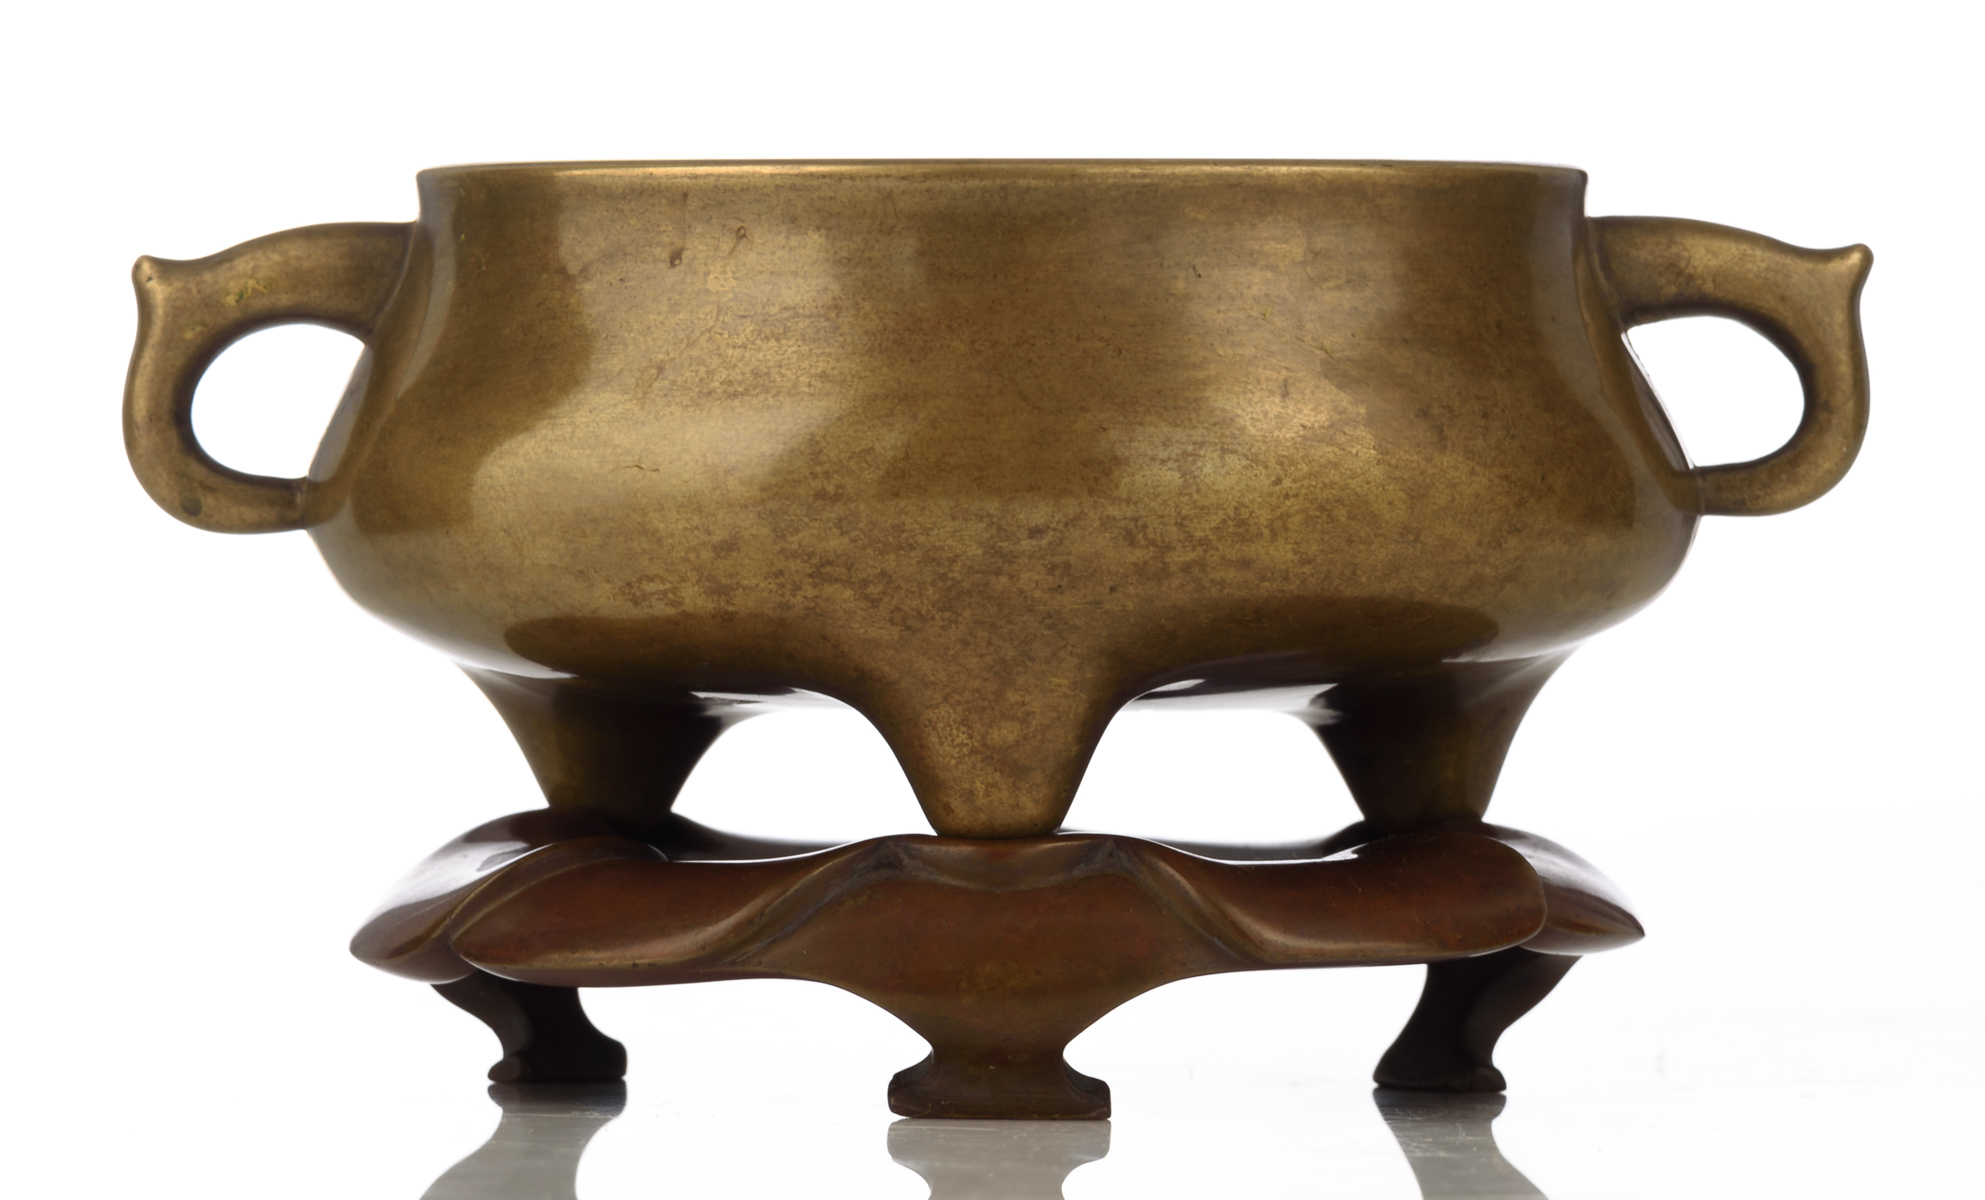 Lot 8 - A Chinese archaic bronze gui tripod incense burner on a matching red copper nymphaea shaped stand,